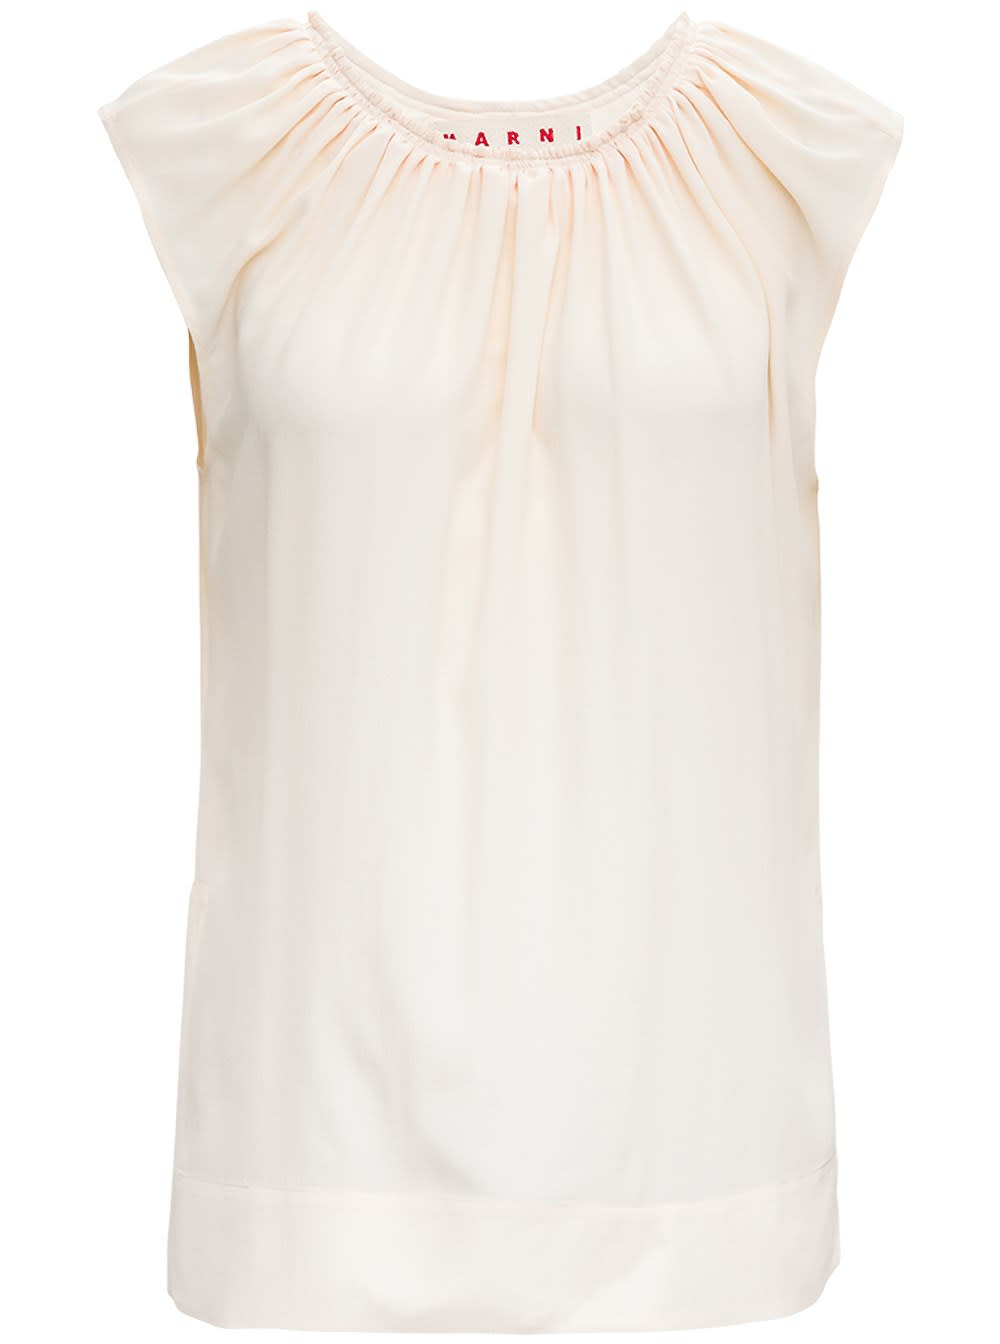 Marni IVORY COLORED TANK TOP IN SILK BLEND